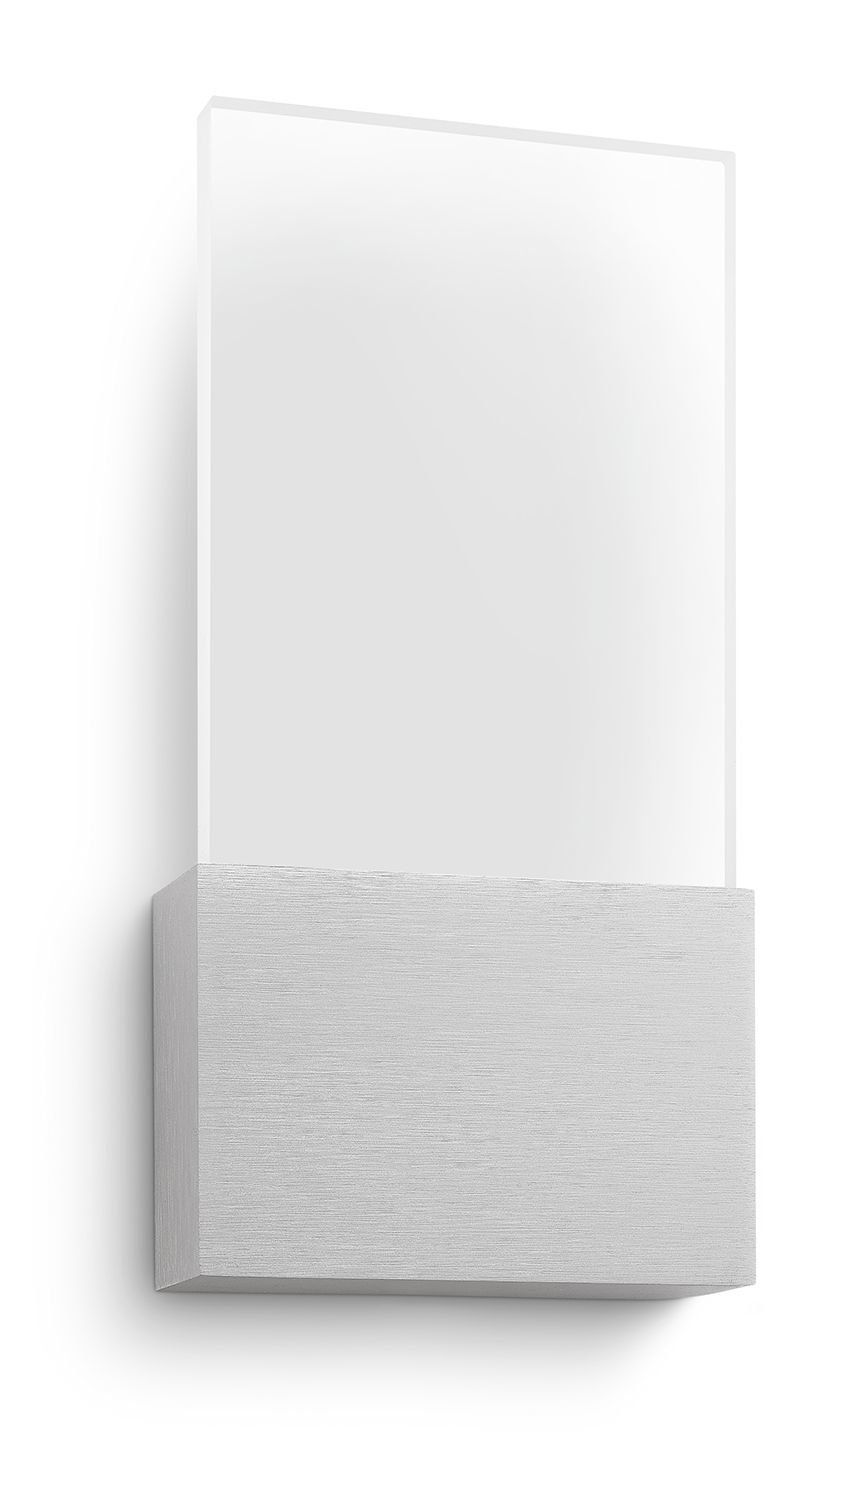 Philips myLiving LED Wall Light Watch Aluminium | Led wall ... on Myliving Outdoors id=45377